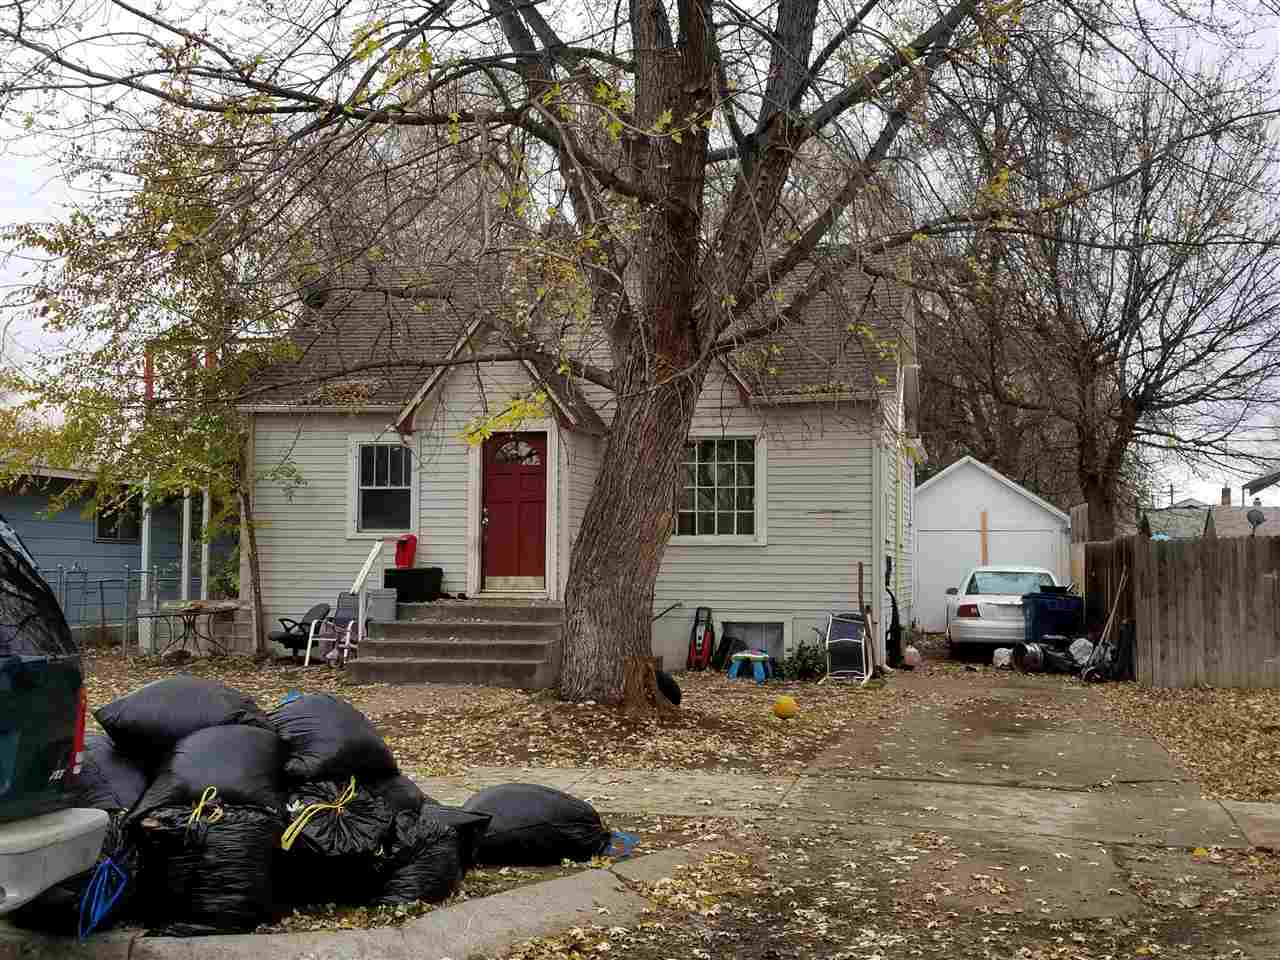 720 S 14th Ave.,Nampa,Idaho 83651,2 Bedrooms Bedrooms,1 BathroomBathrooms,Residential Income,720 S 14th Ave.,98676188